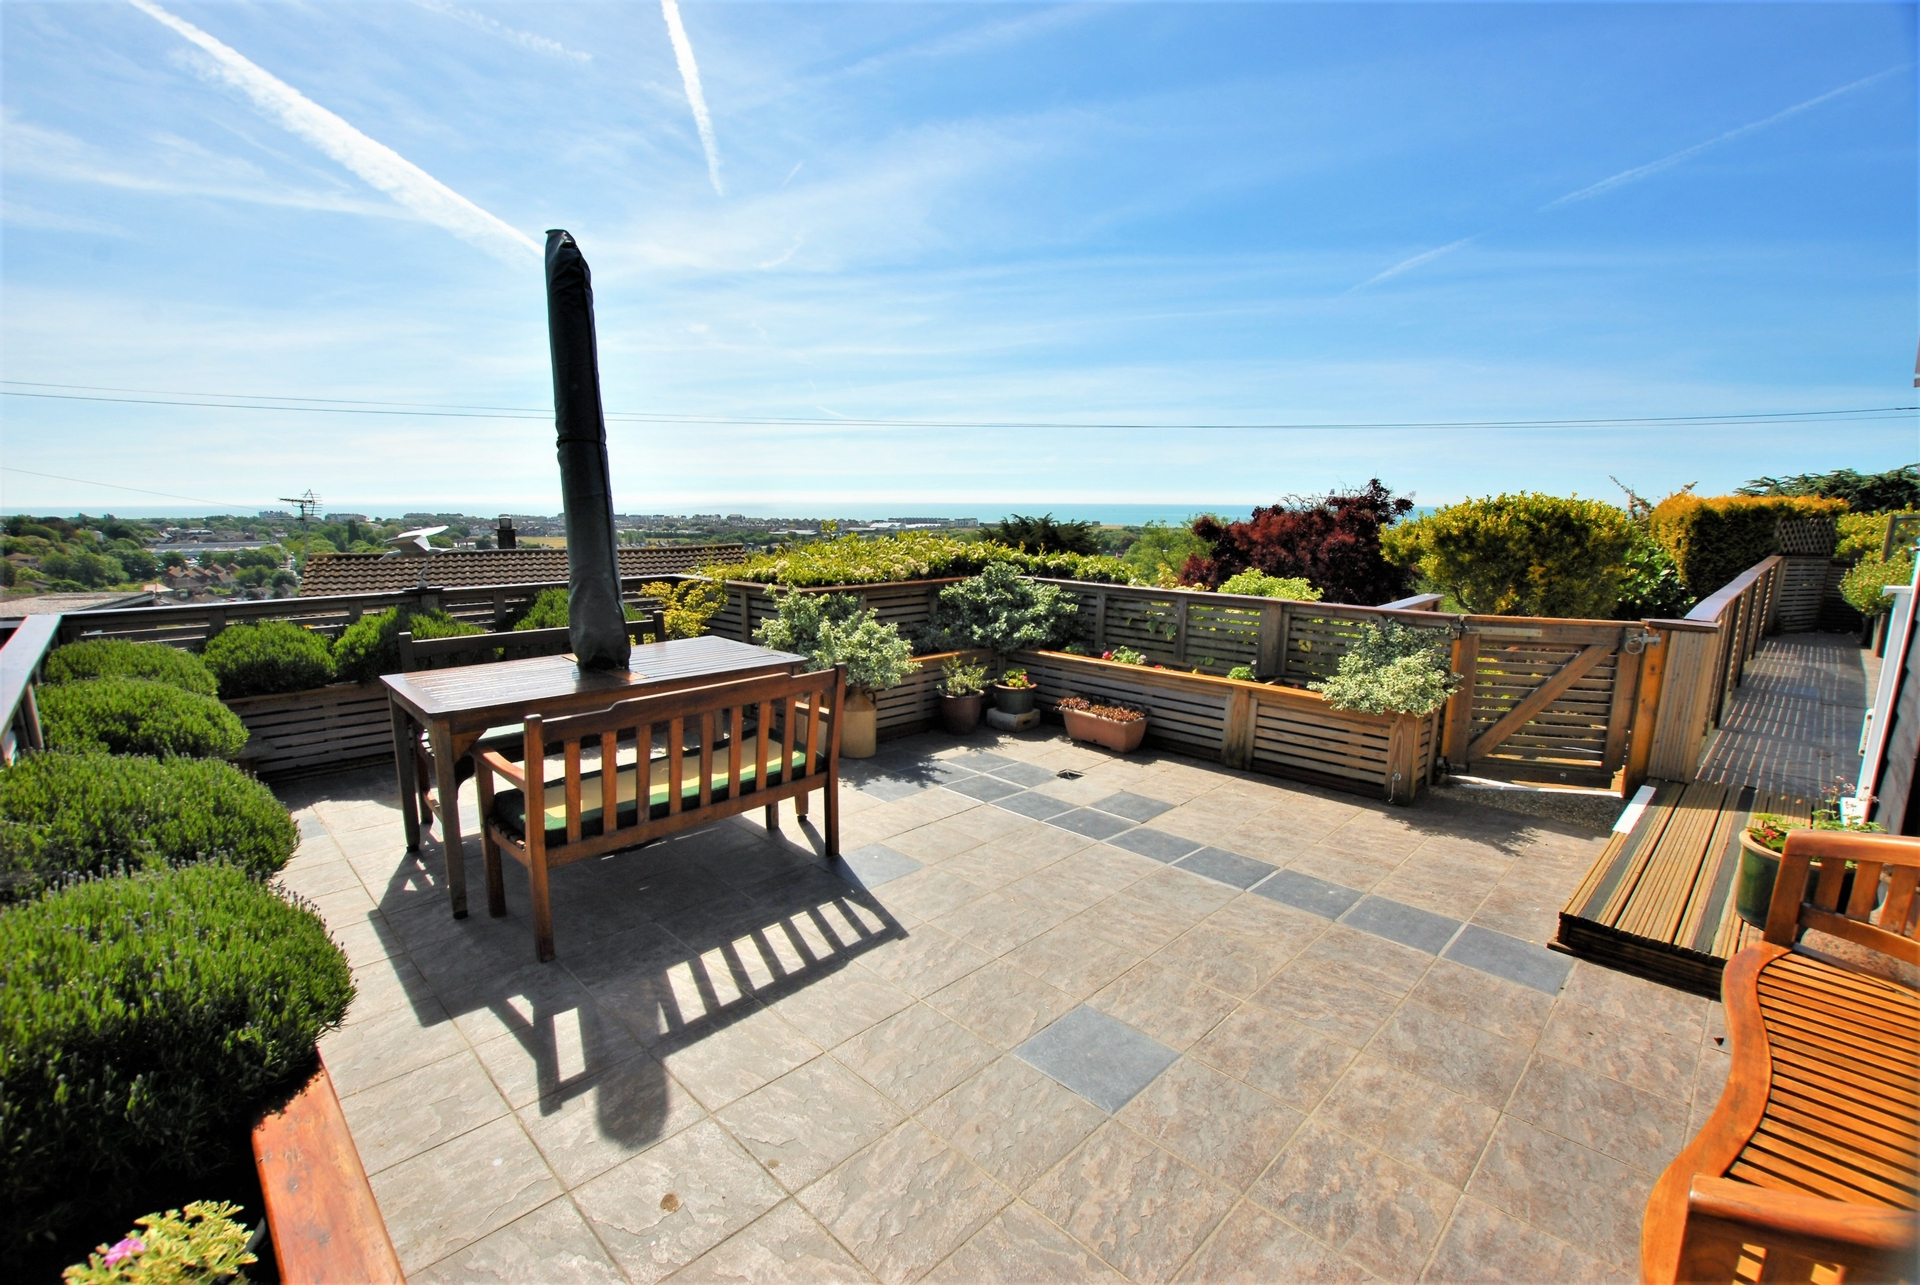 Terrace and view, Redbrooks Way, Hythe, CT21